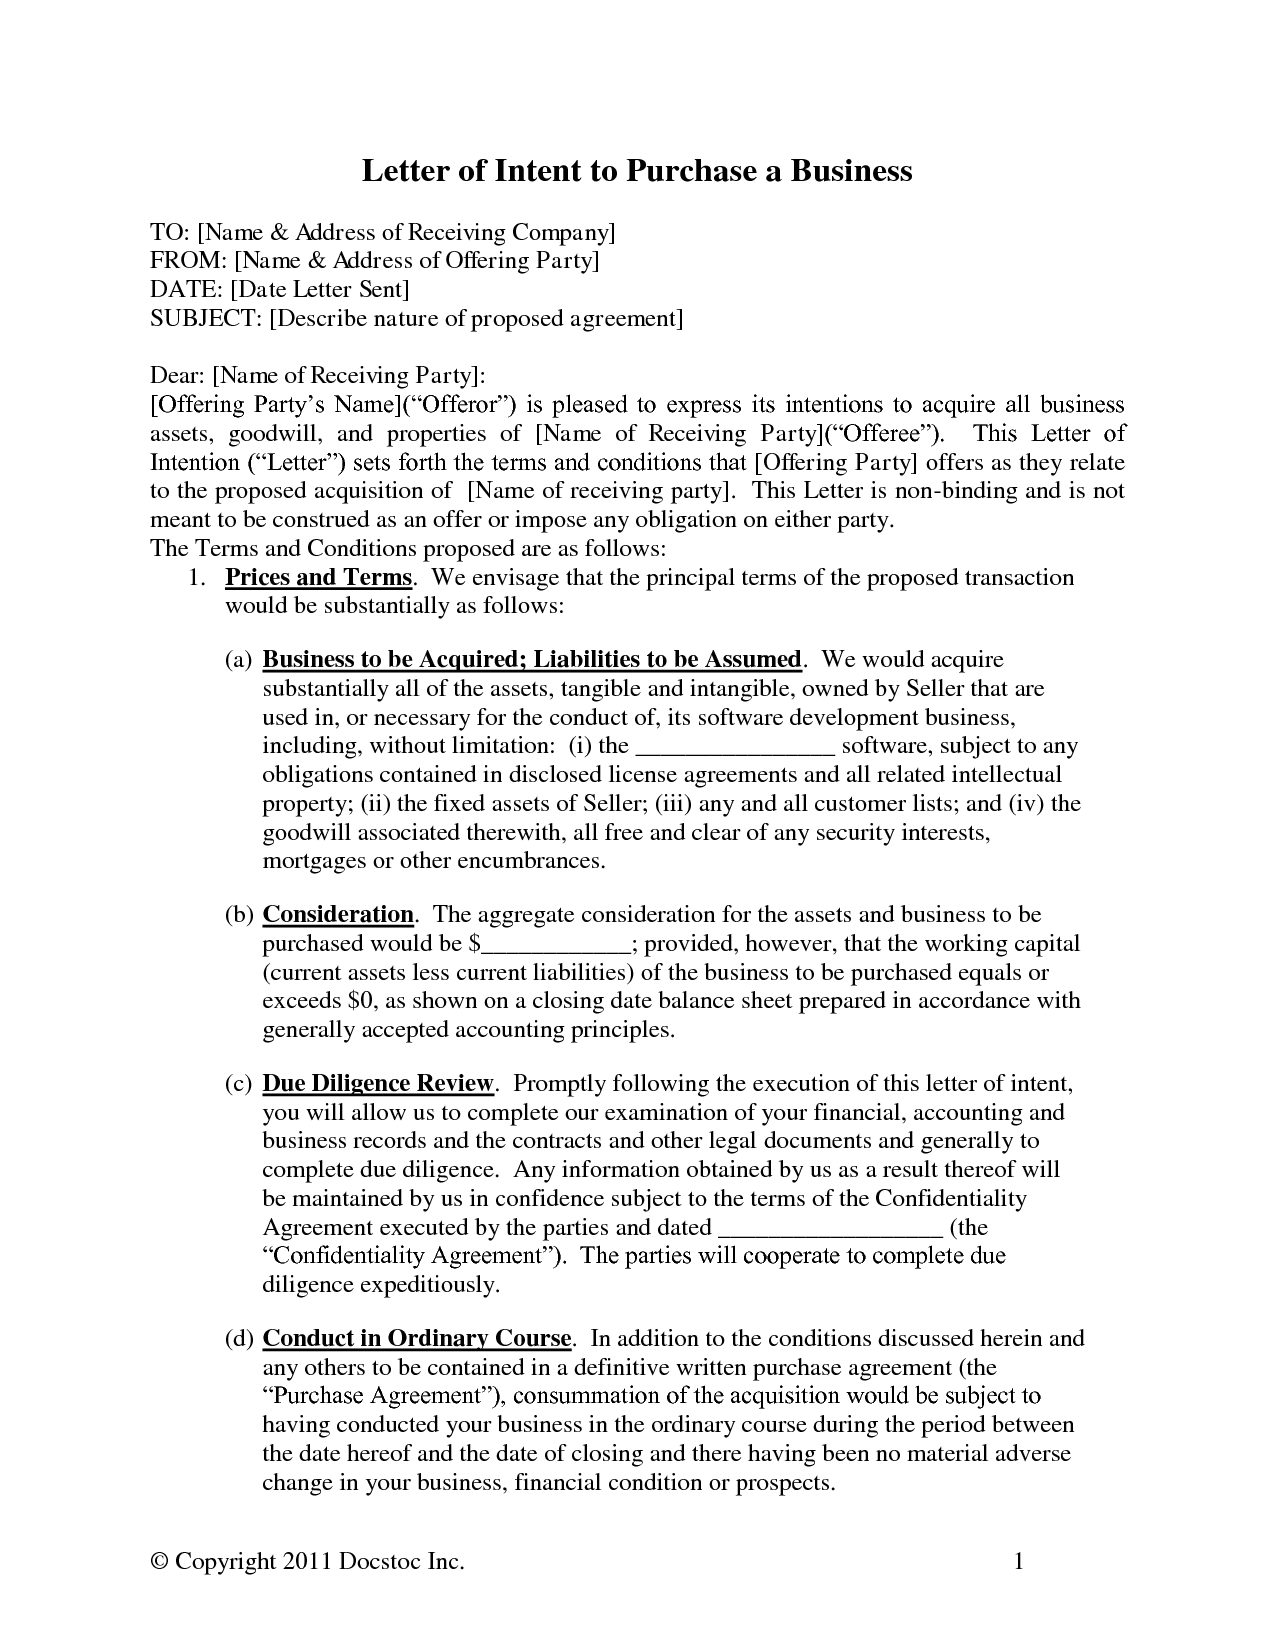 basic letter of intent template Collection-Acquisition Business Letters 20-a